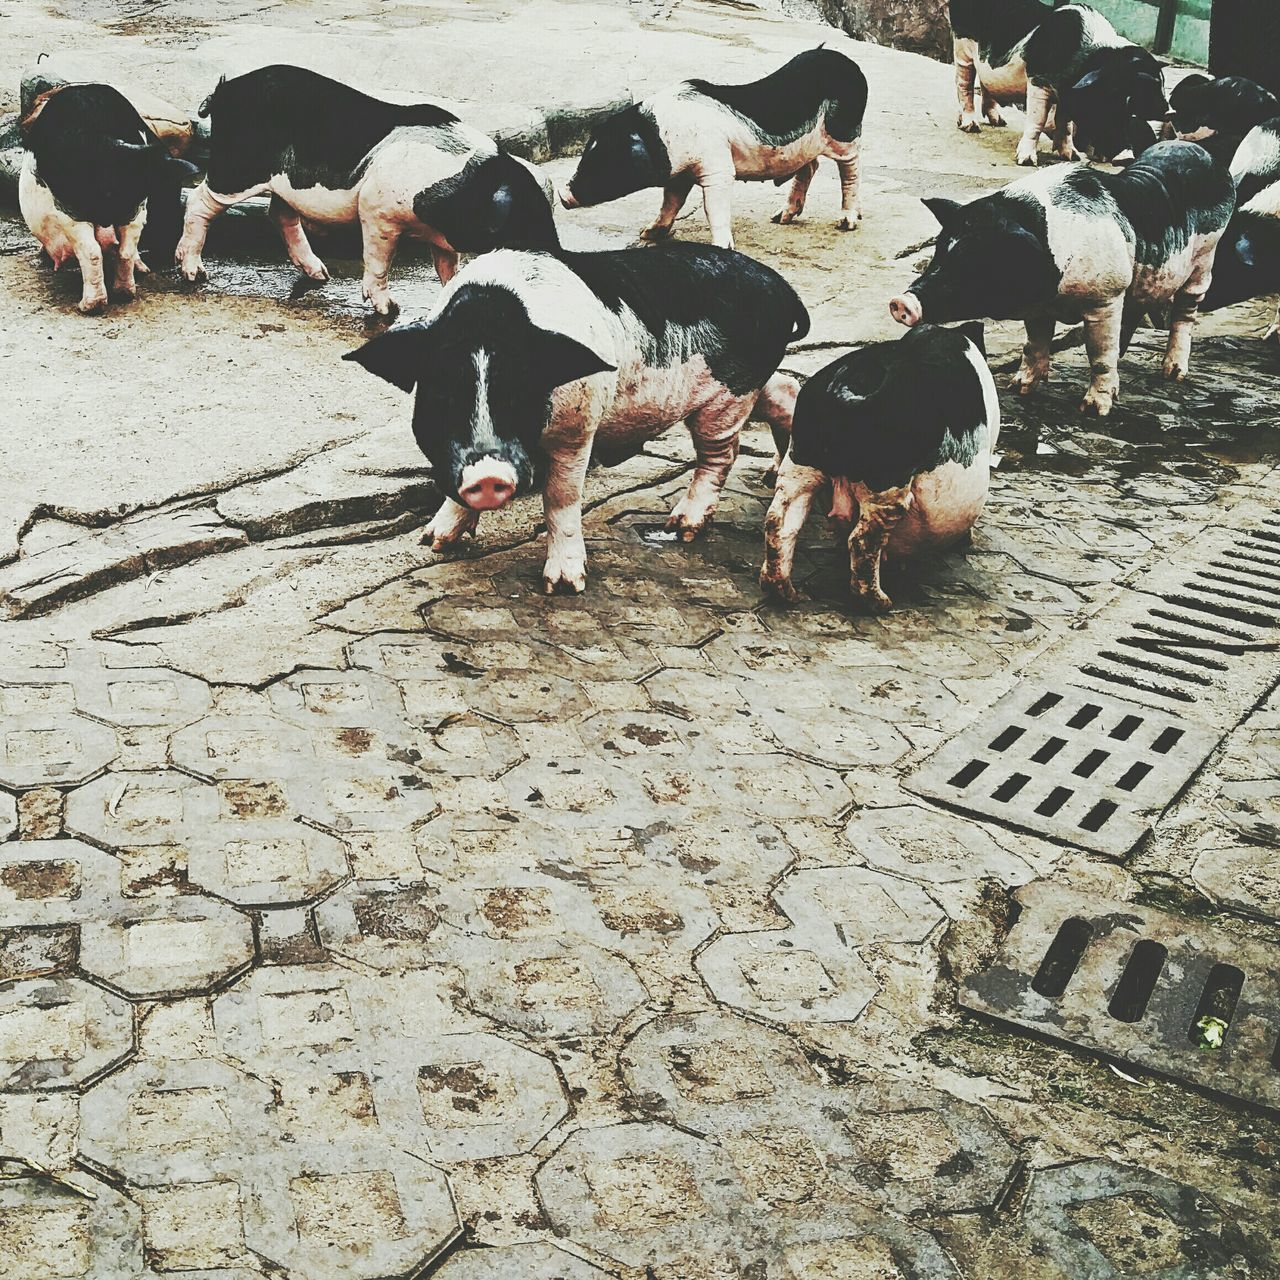 animal themes, domestic animals, high angle view, large group of animals, day, mammal, outdoors, nature, no people, bird